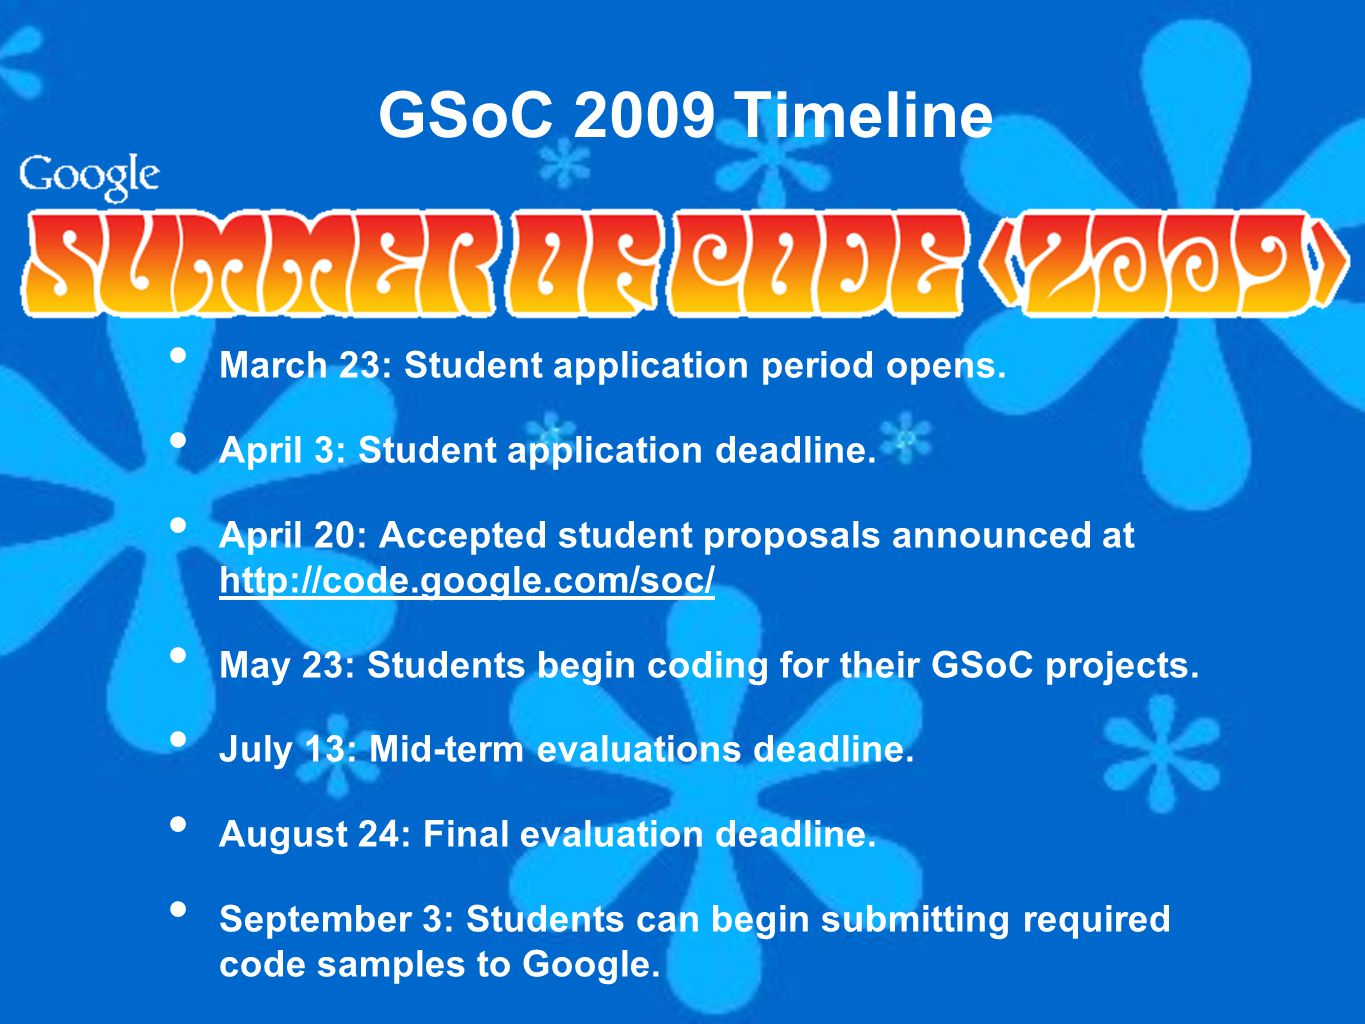 March 23: Student application period opens. April 3: Student application deadline.